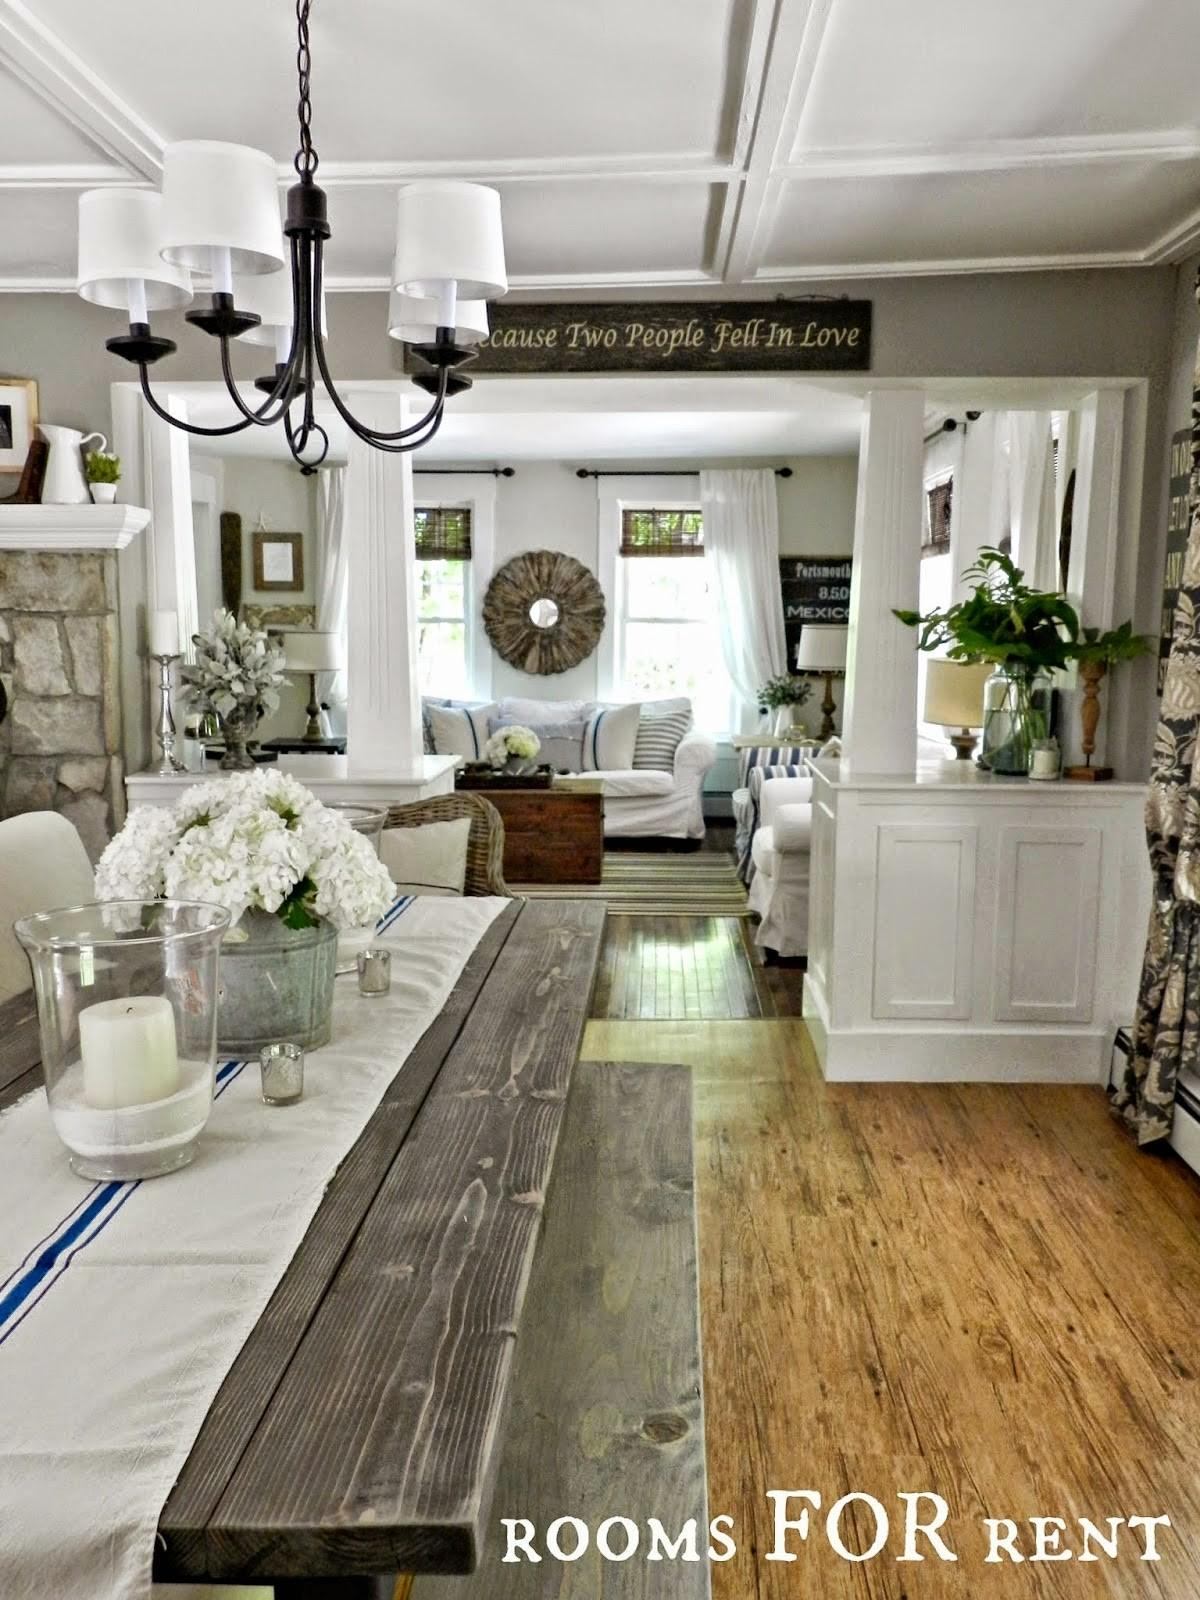 Style House Rooms Rent City Farmhouse